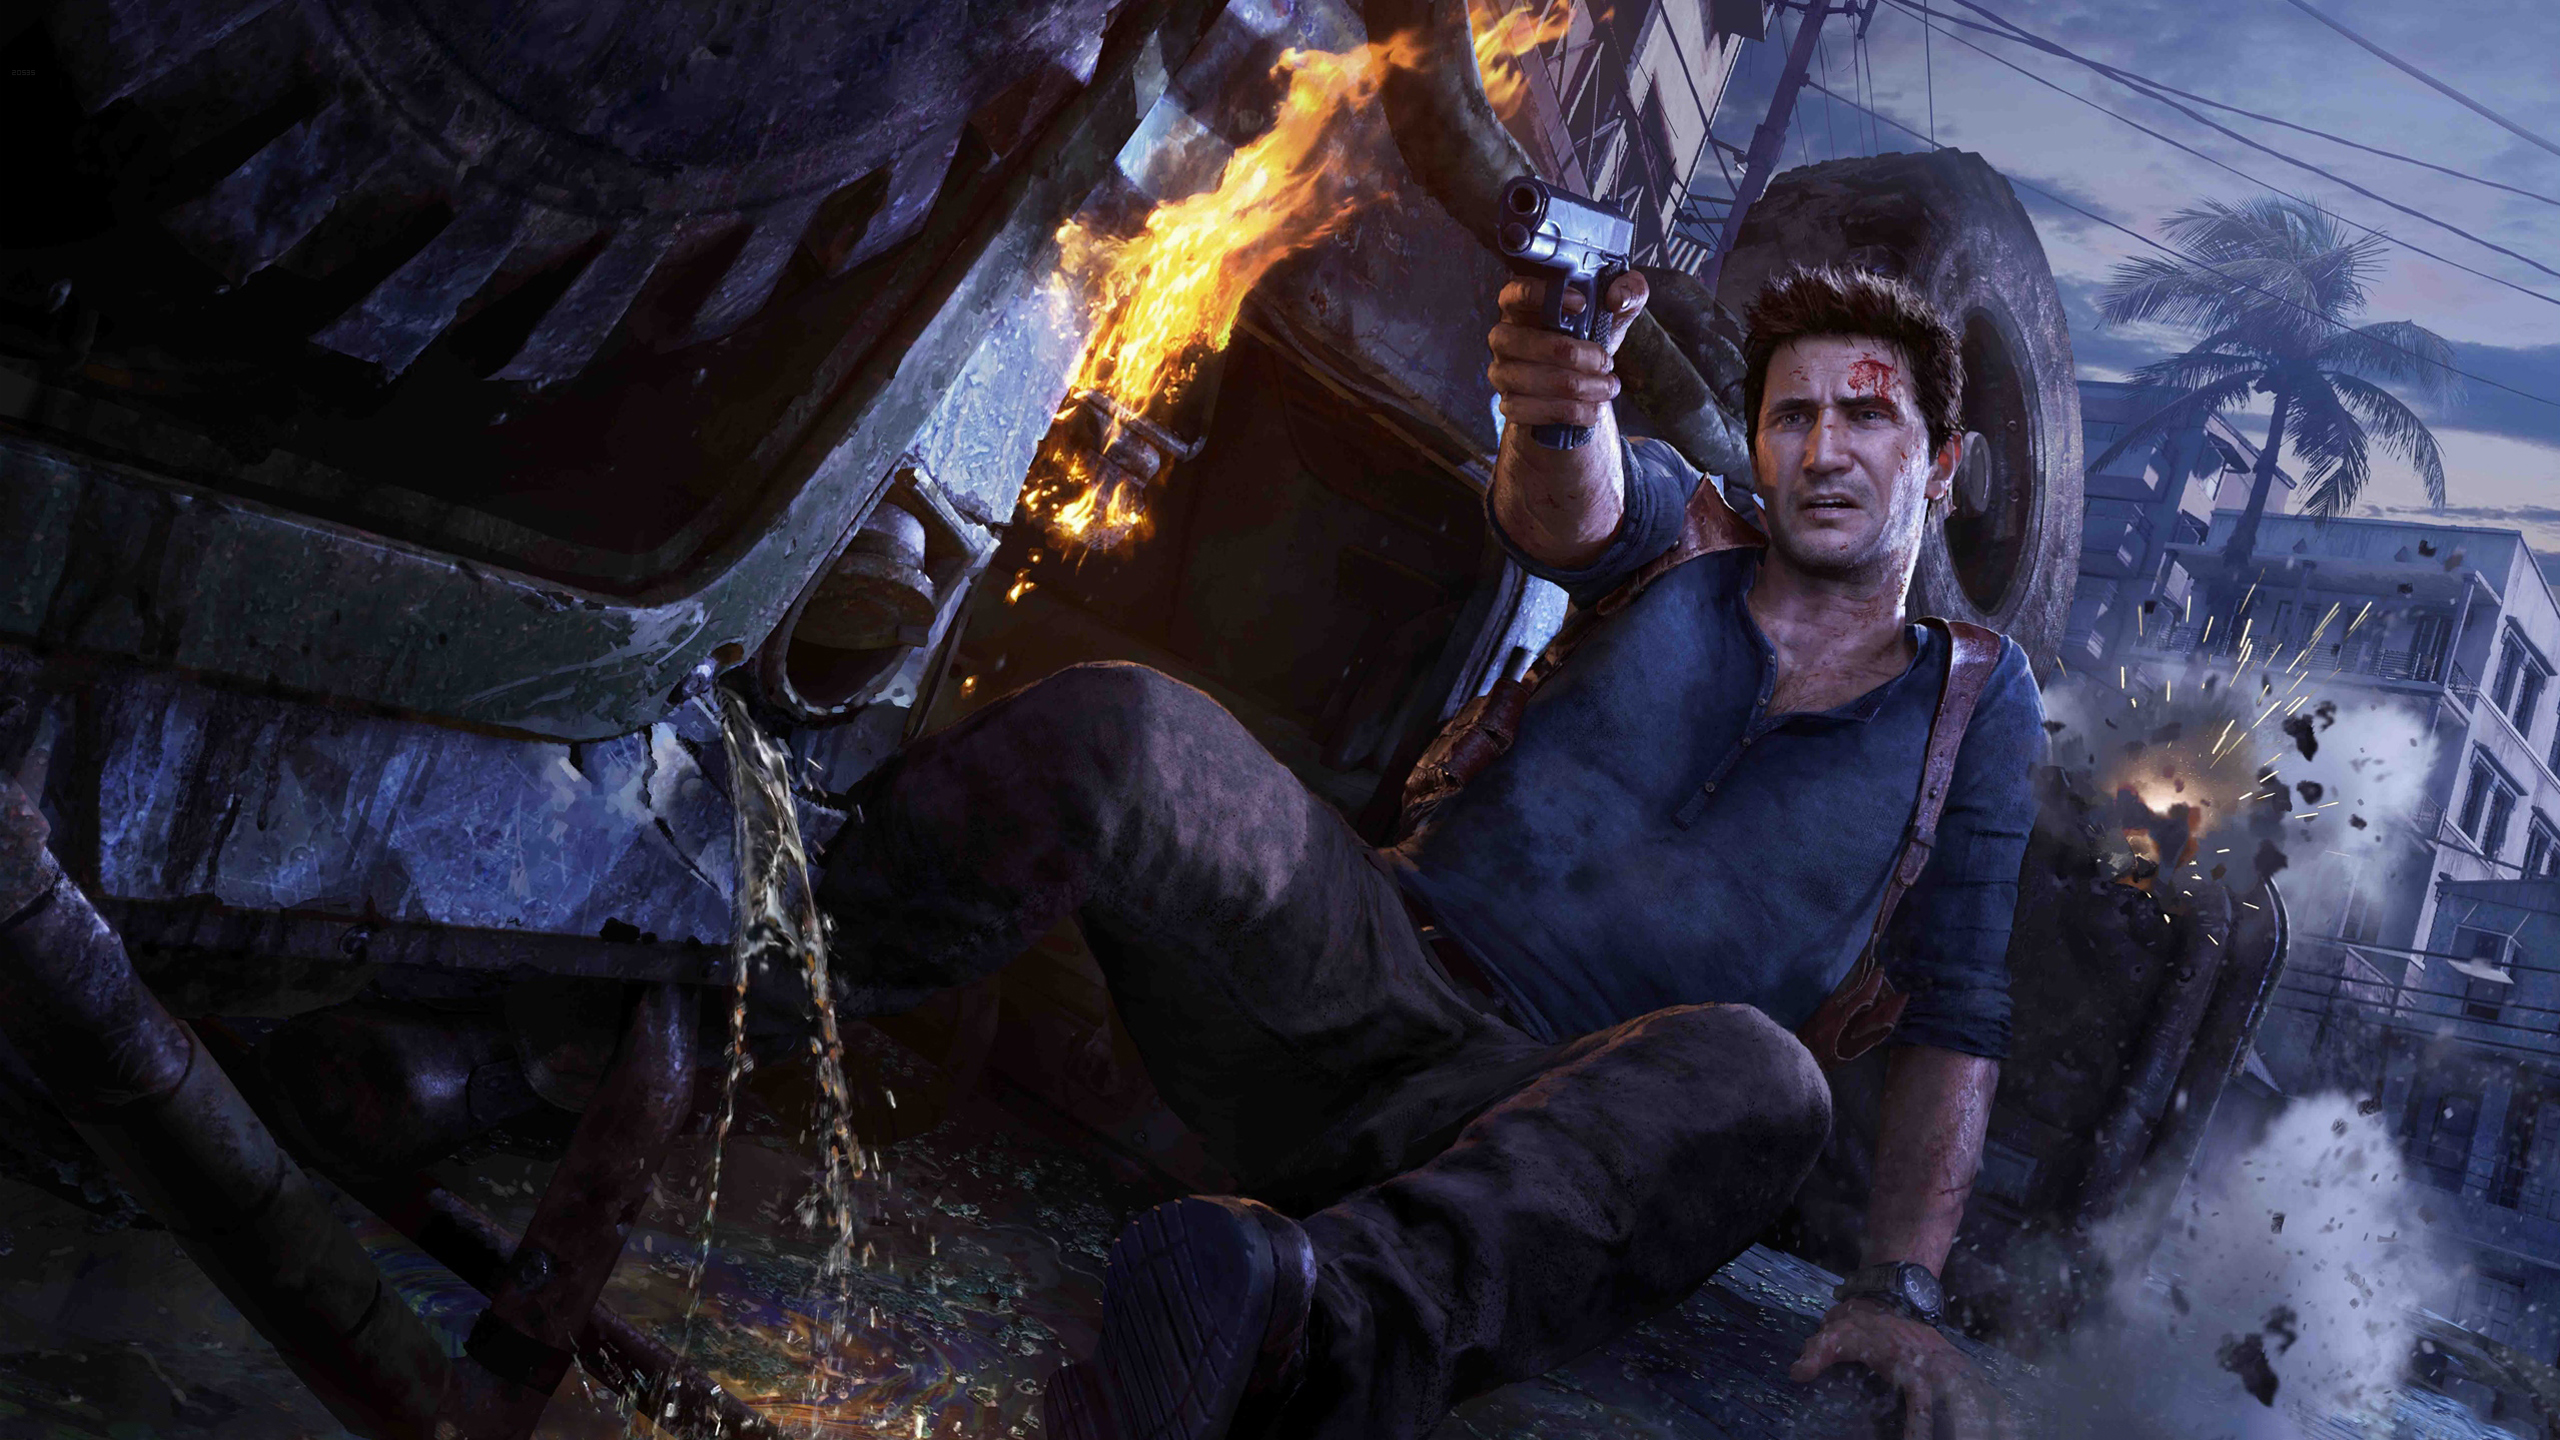 Uncharted 4 A Thiefs End Wallpapers HD Wallpapers 2560x1440